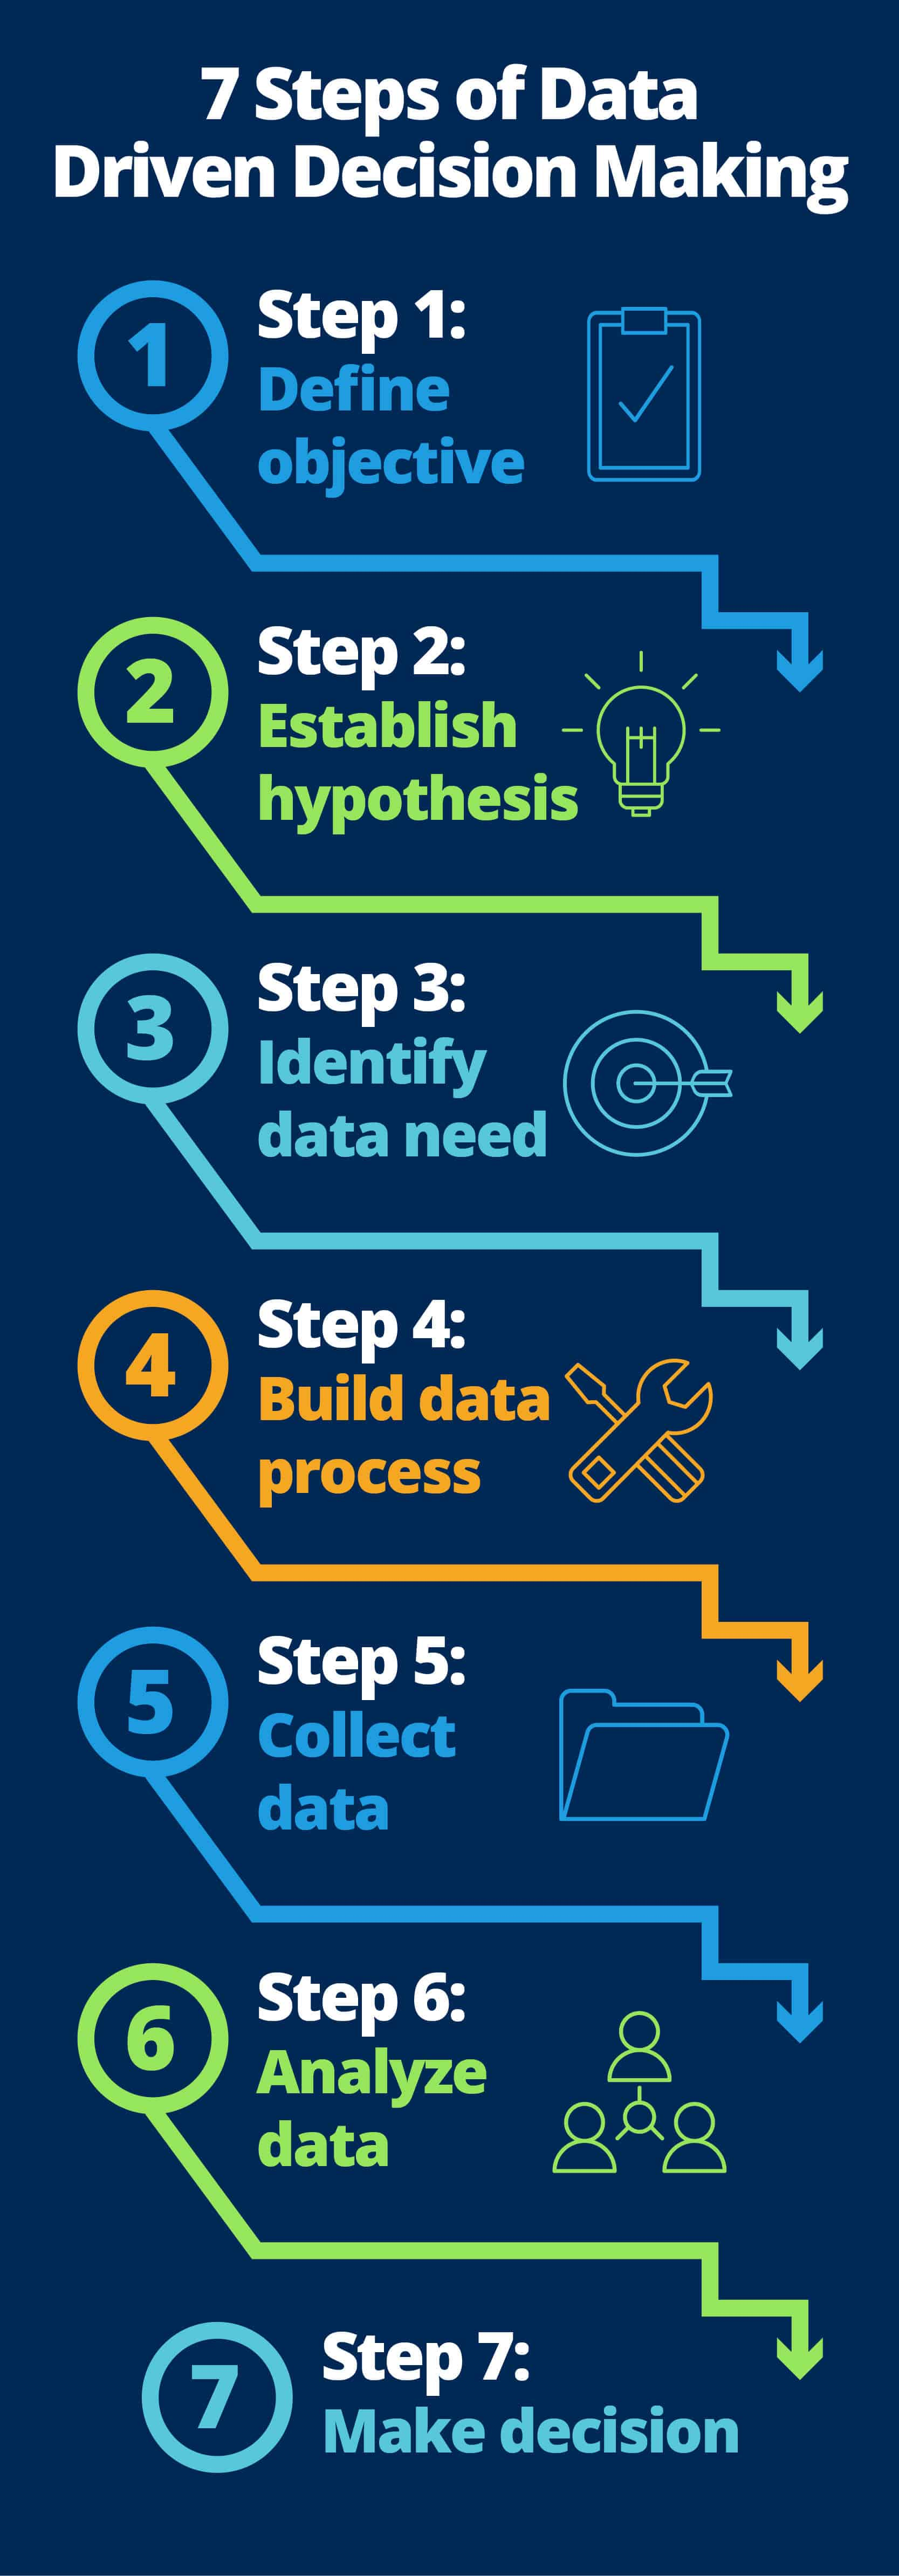 Quick Guide to Data-Driven Management | Smartsheet